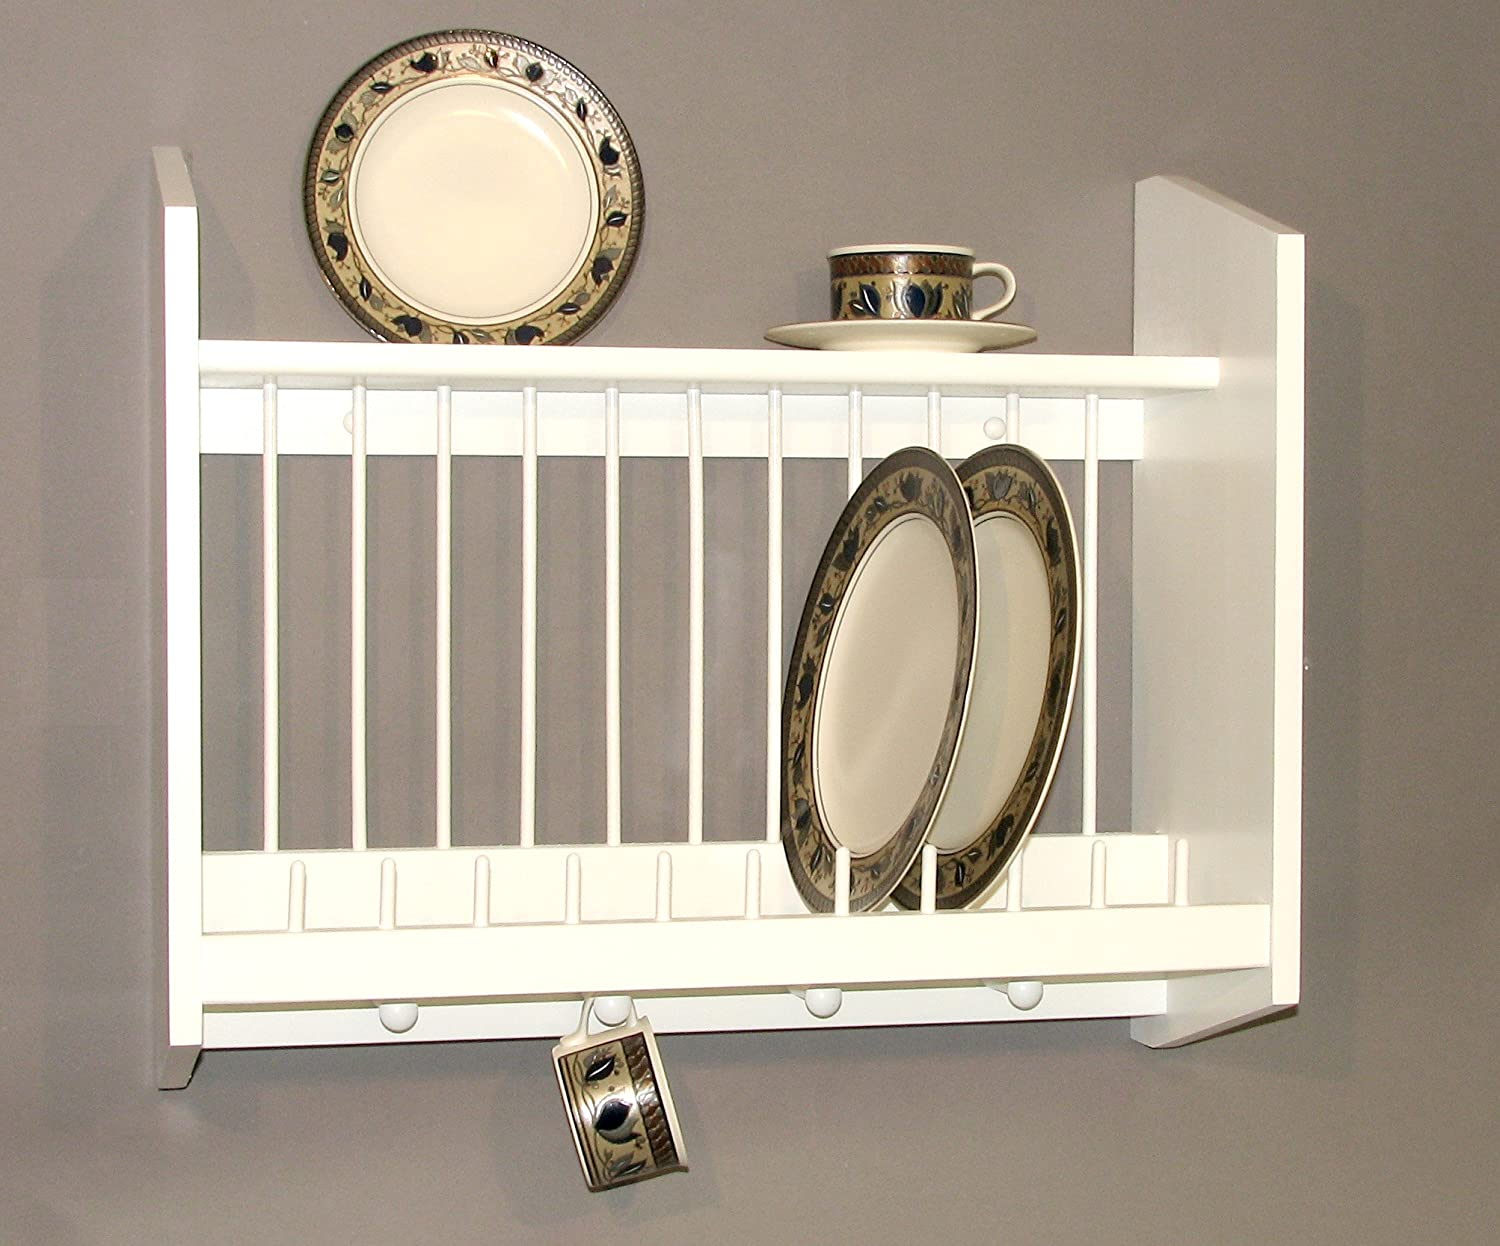 Amazon.com Plate Rack with Shelf Natural MADE IN USA Dish Racks Kitchen u0026 Dining & Amazon.com: Plate Rack with Shelf Natural MADE IN USA: Dish Racks ...